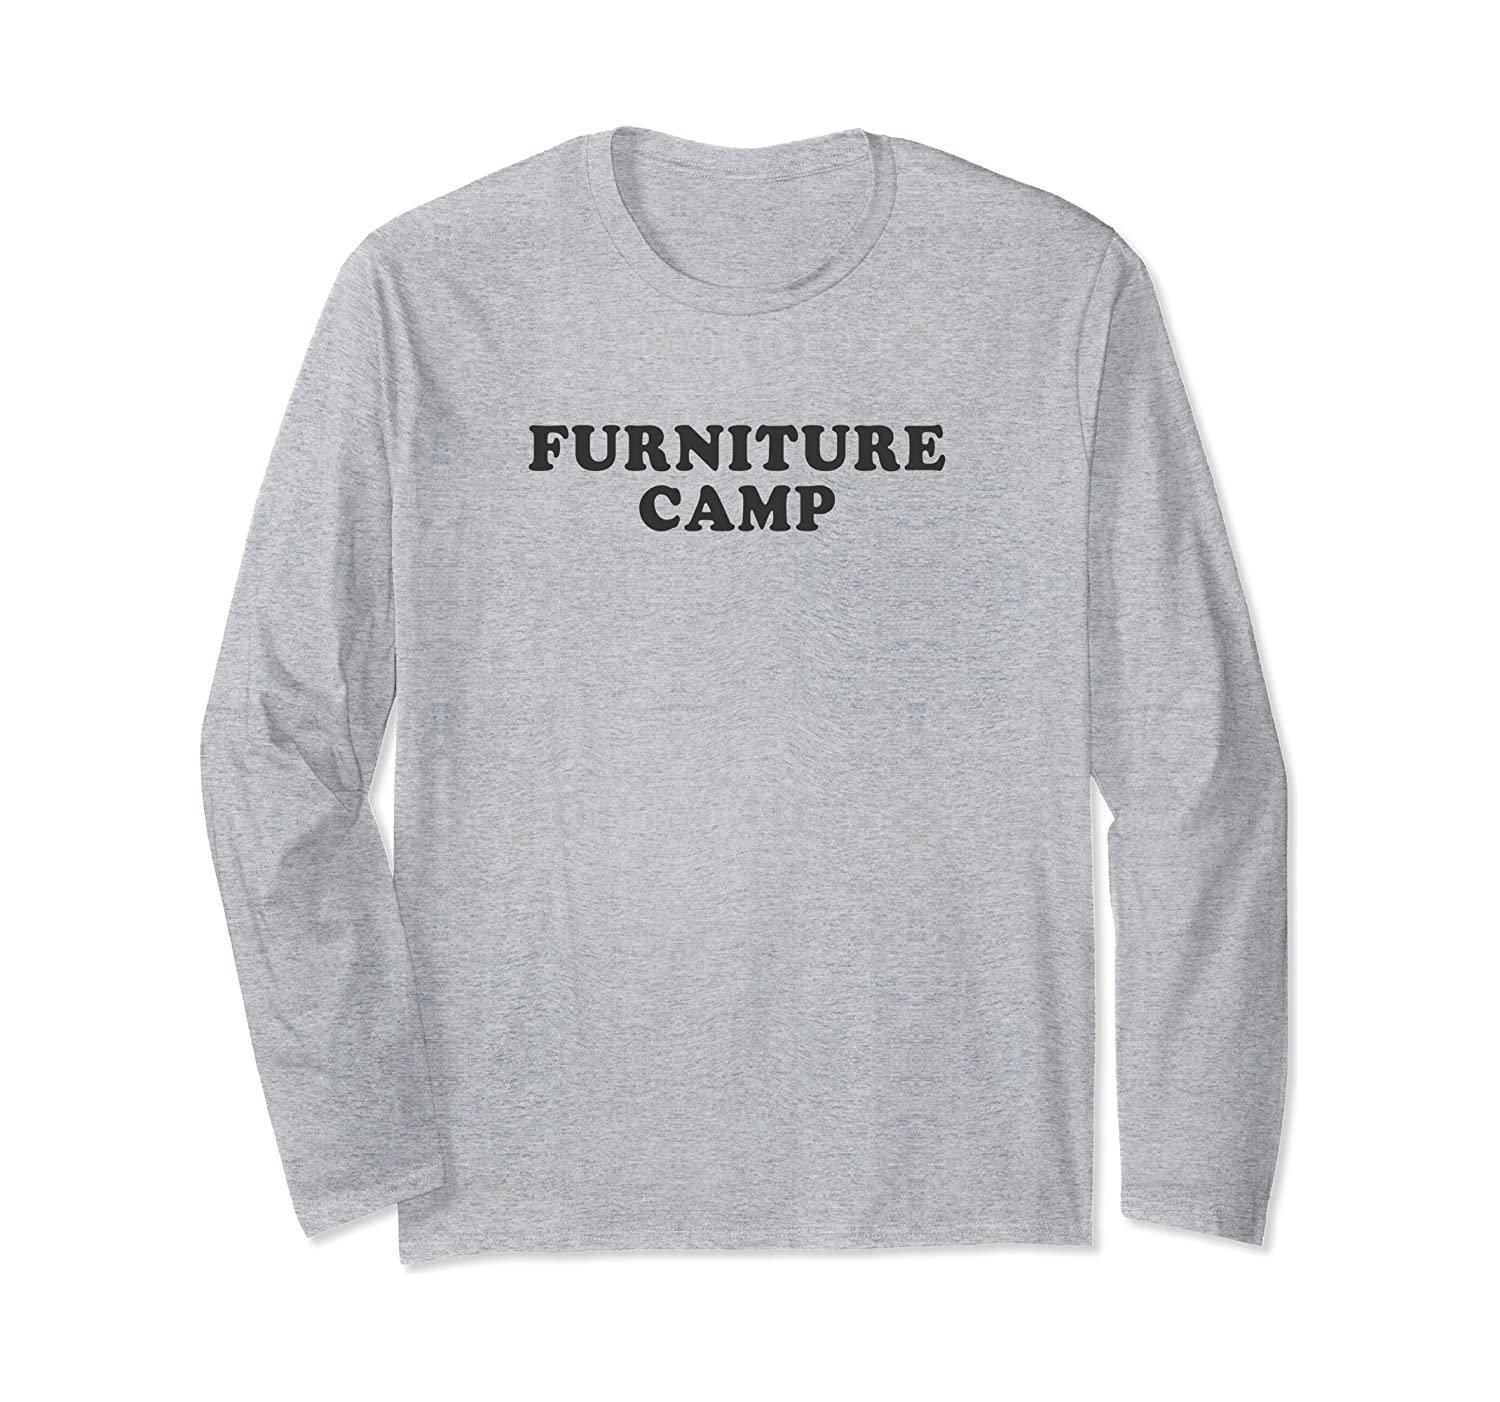 Furniture Camp Home Renovation Interior Design Long Sleeve T-Shirt